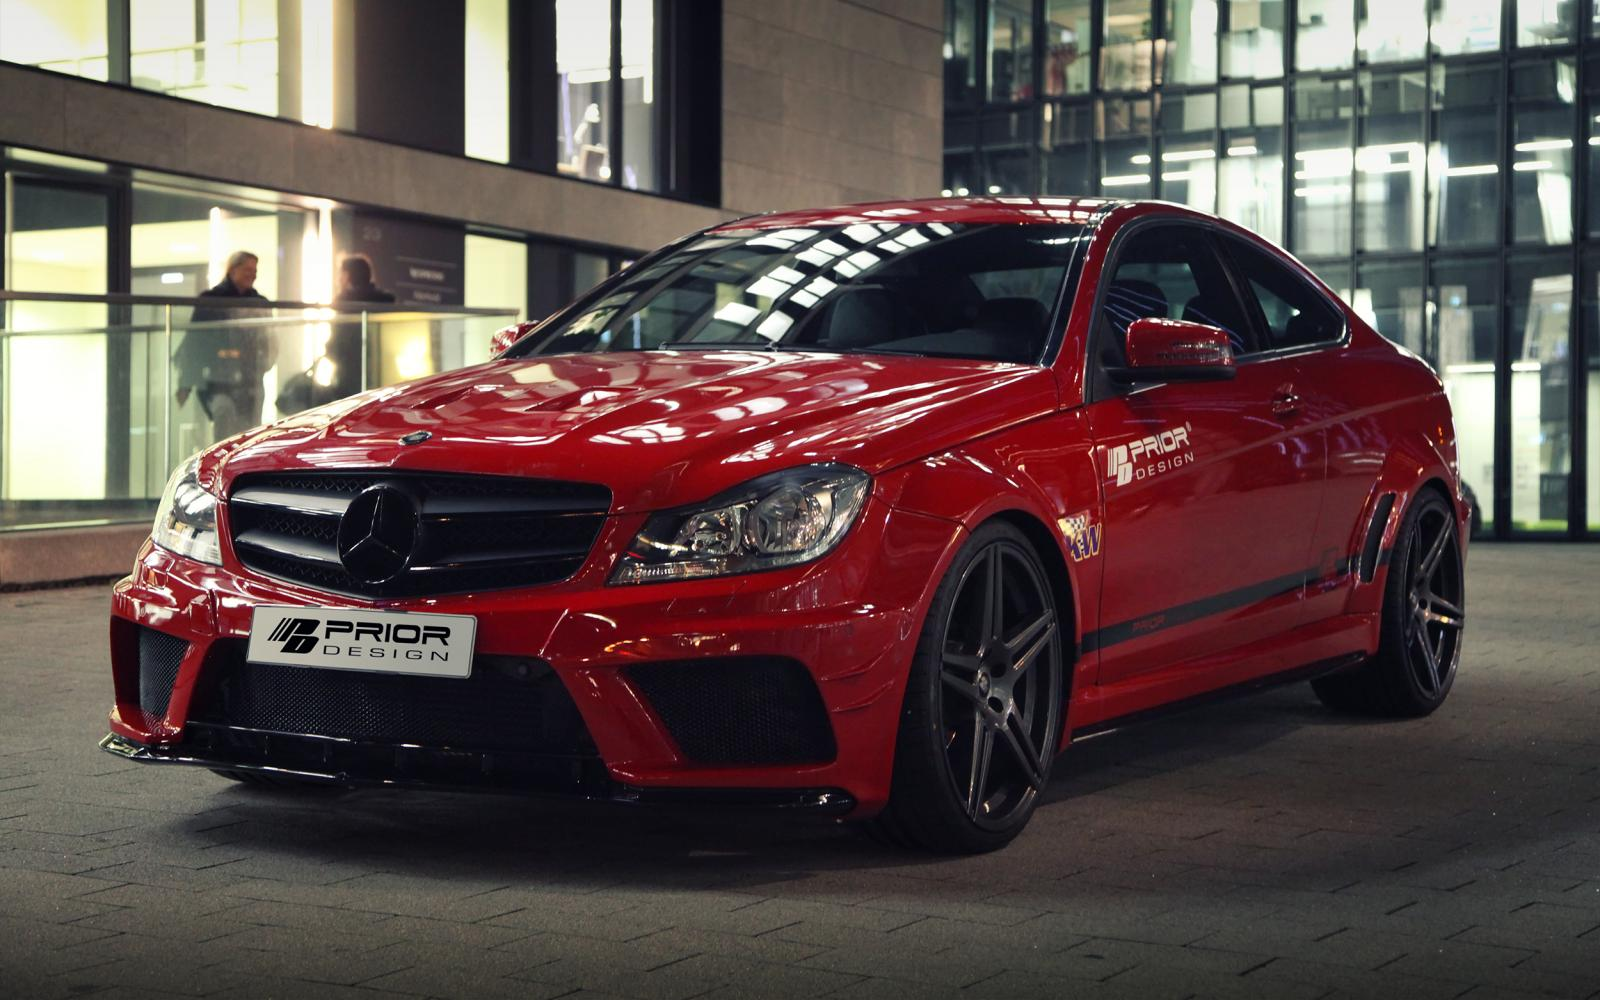 Mercedes benz c class coupe gets prior design wide body kit autoevolution - Mercedes c class coupe body kit ...